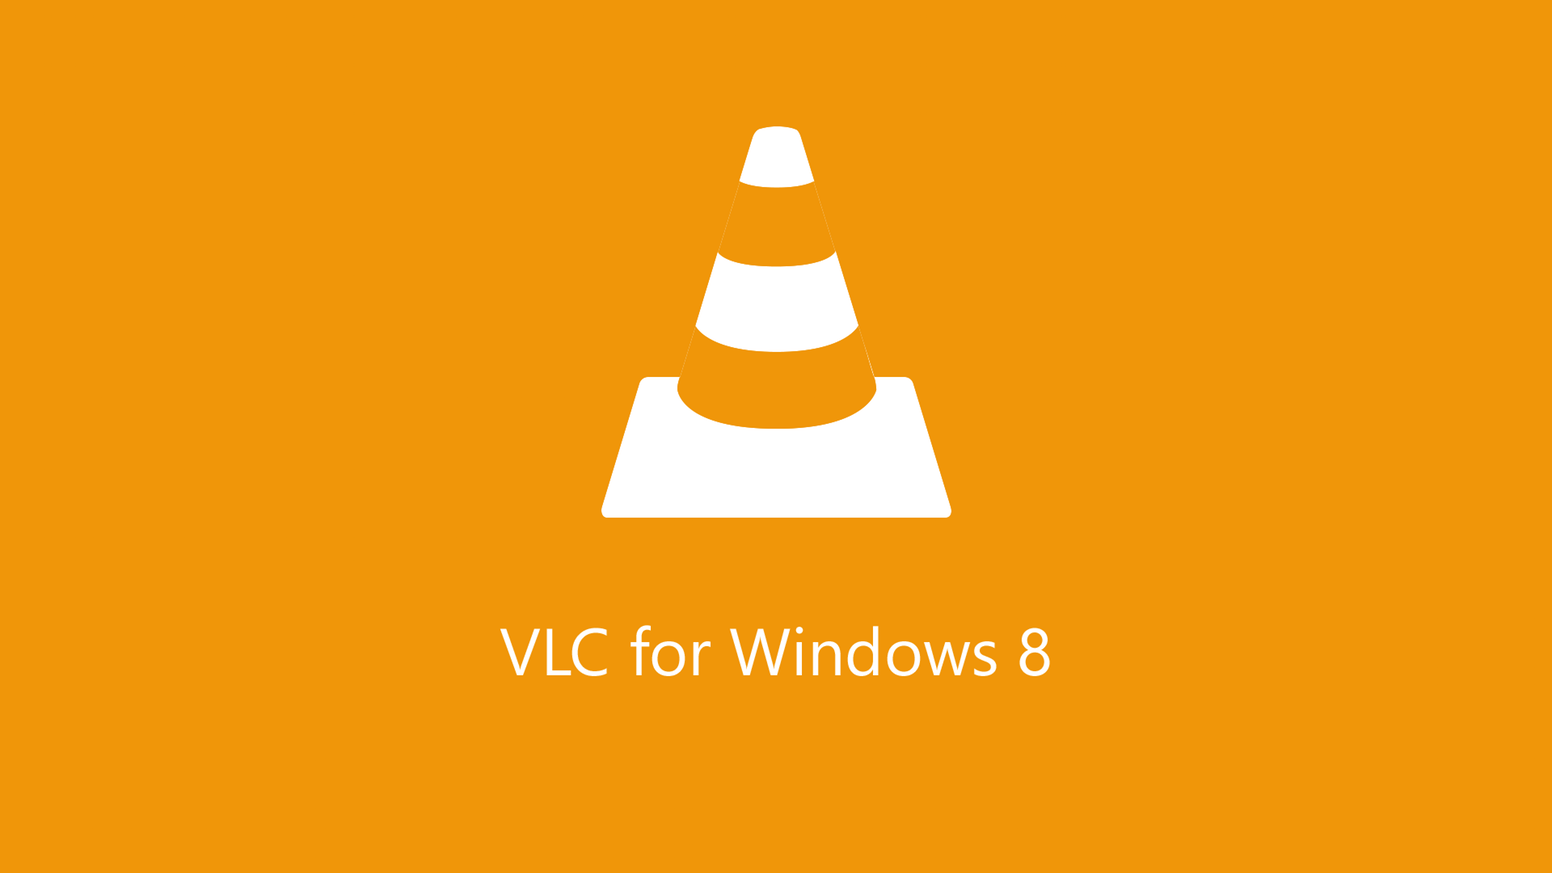 VLC for the new Windows 8 User Experience (